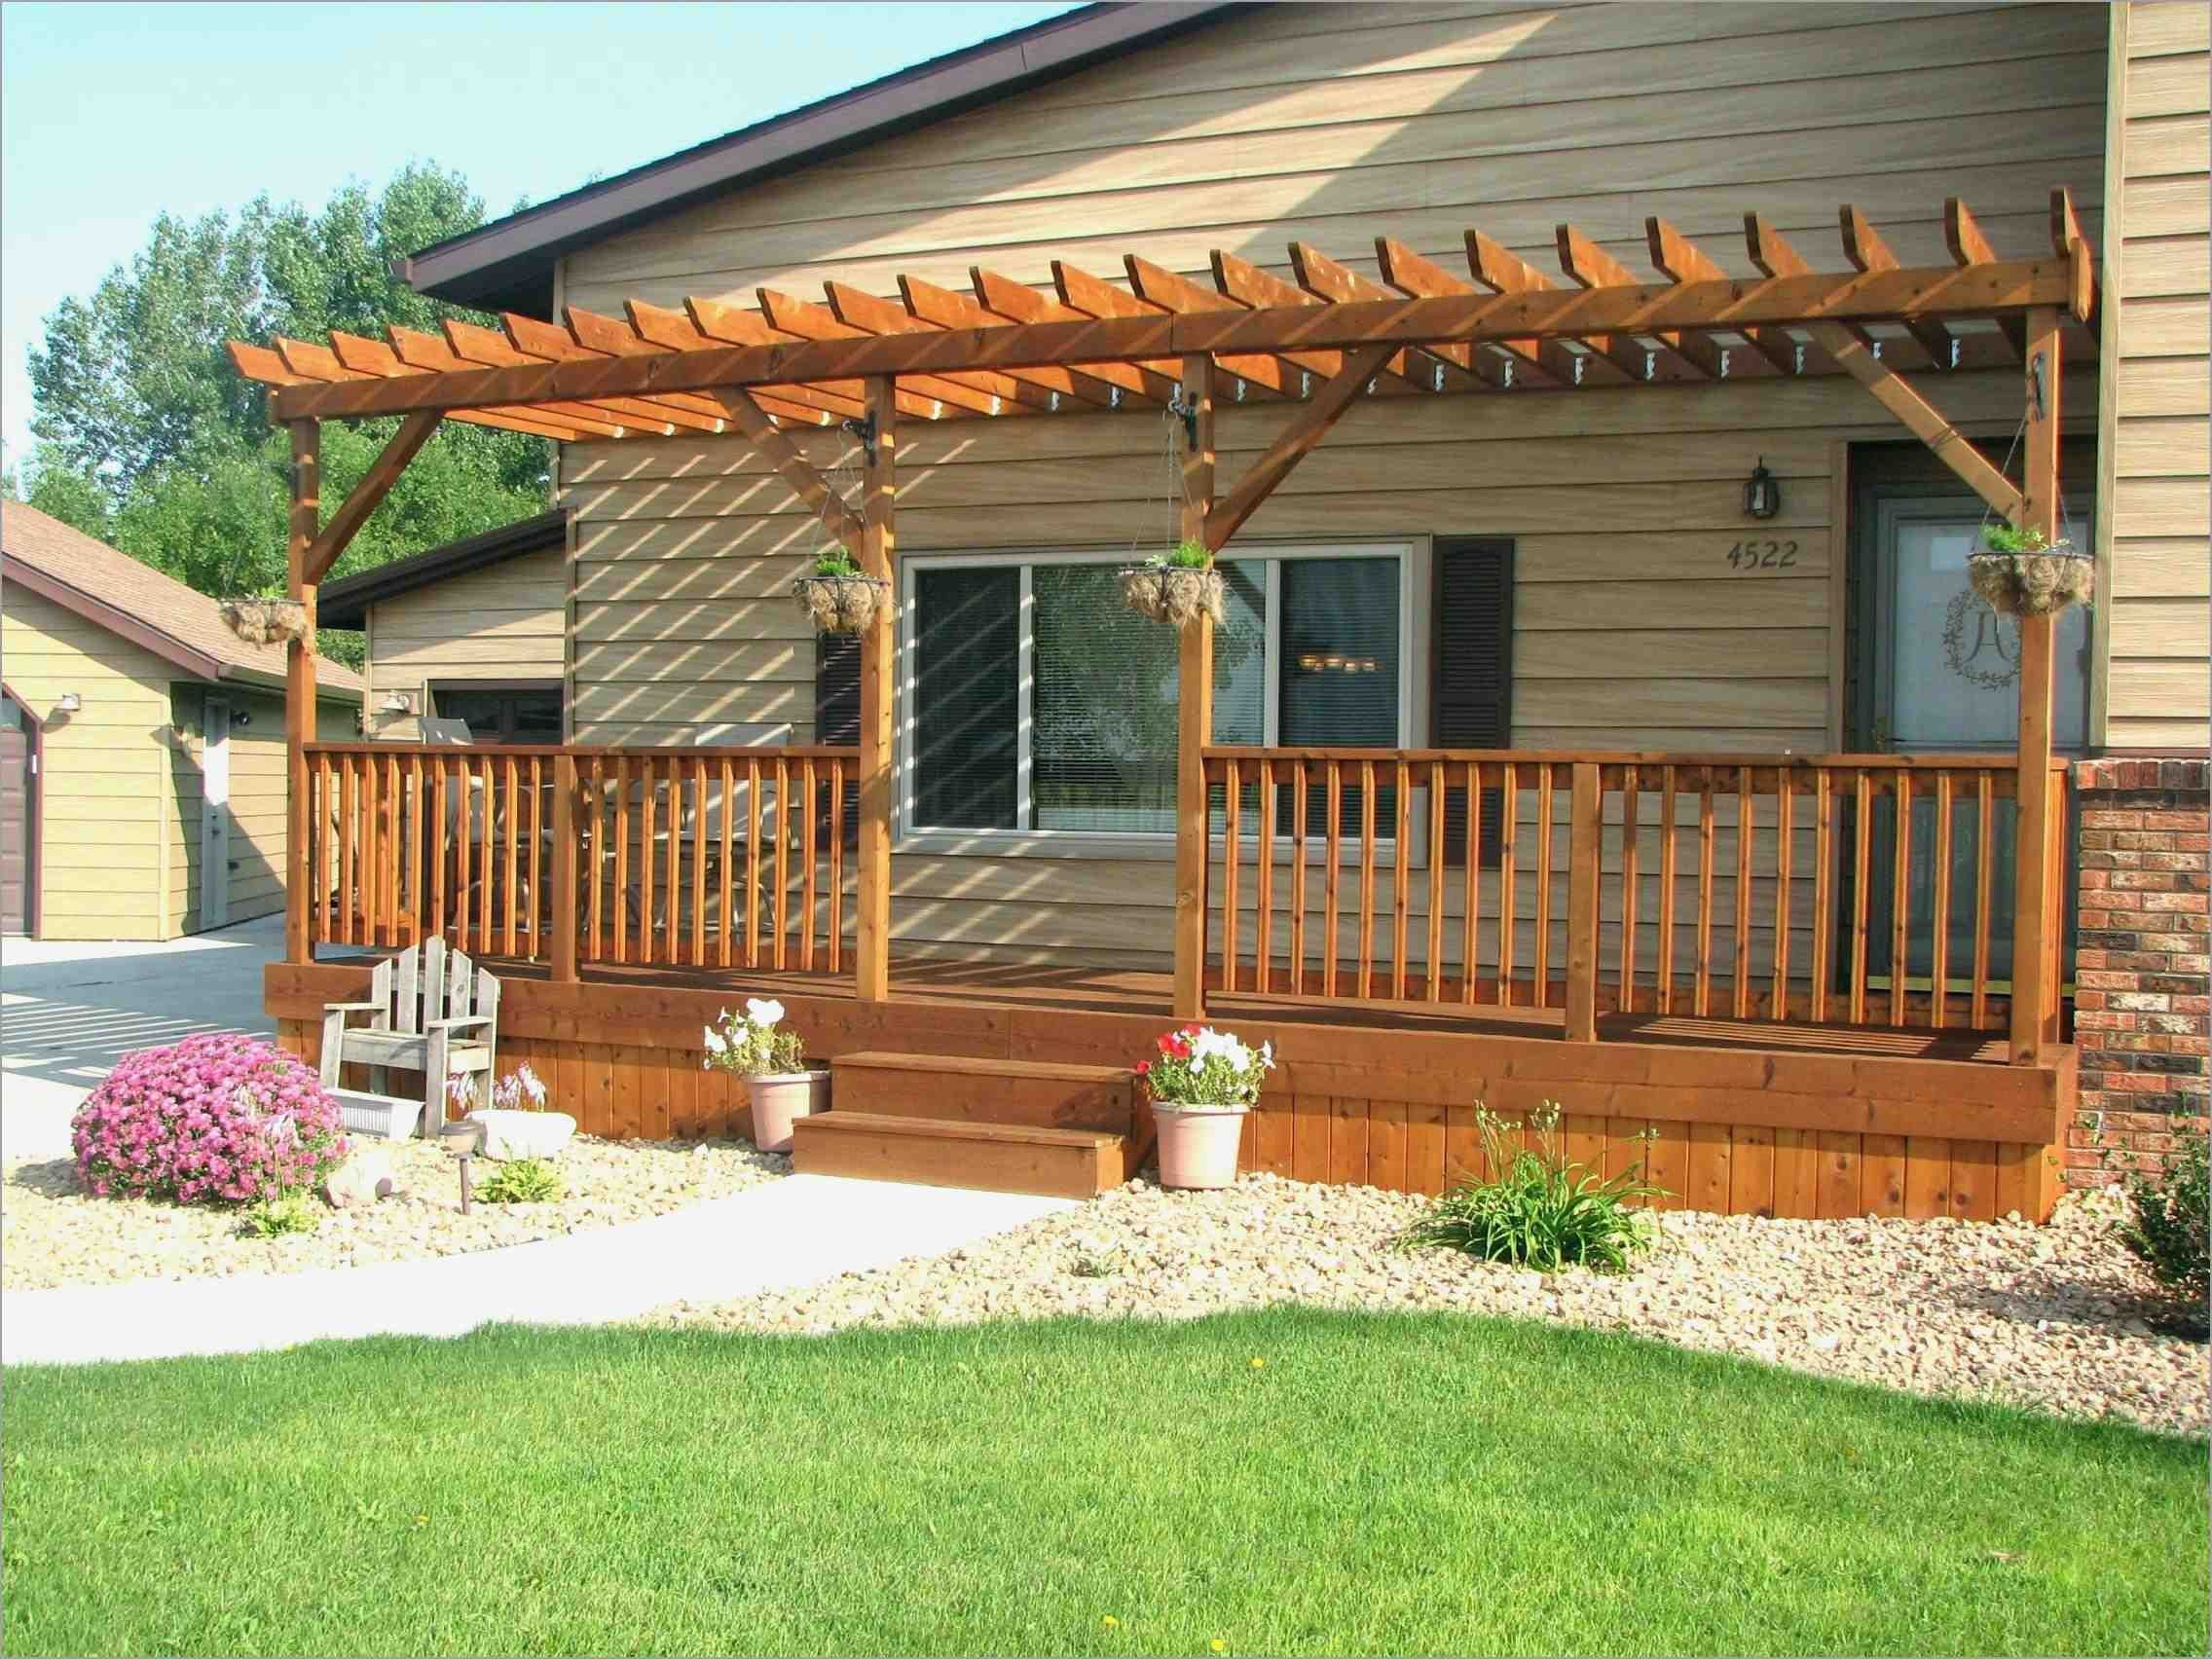 Build Pergola Patio How To A Over Deck Nz Attached Brick House Of Existing Wood Cost Do You An